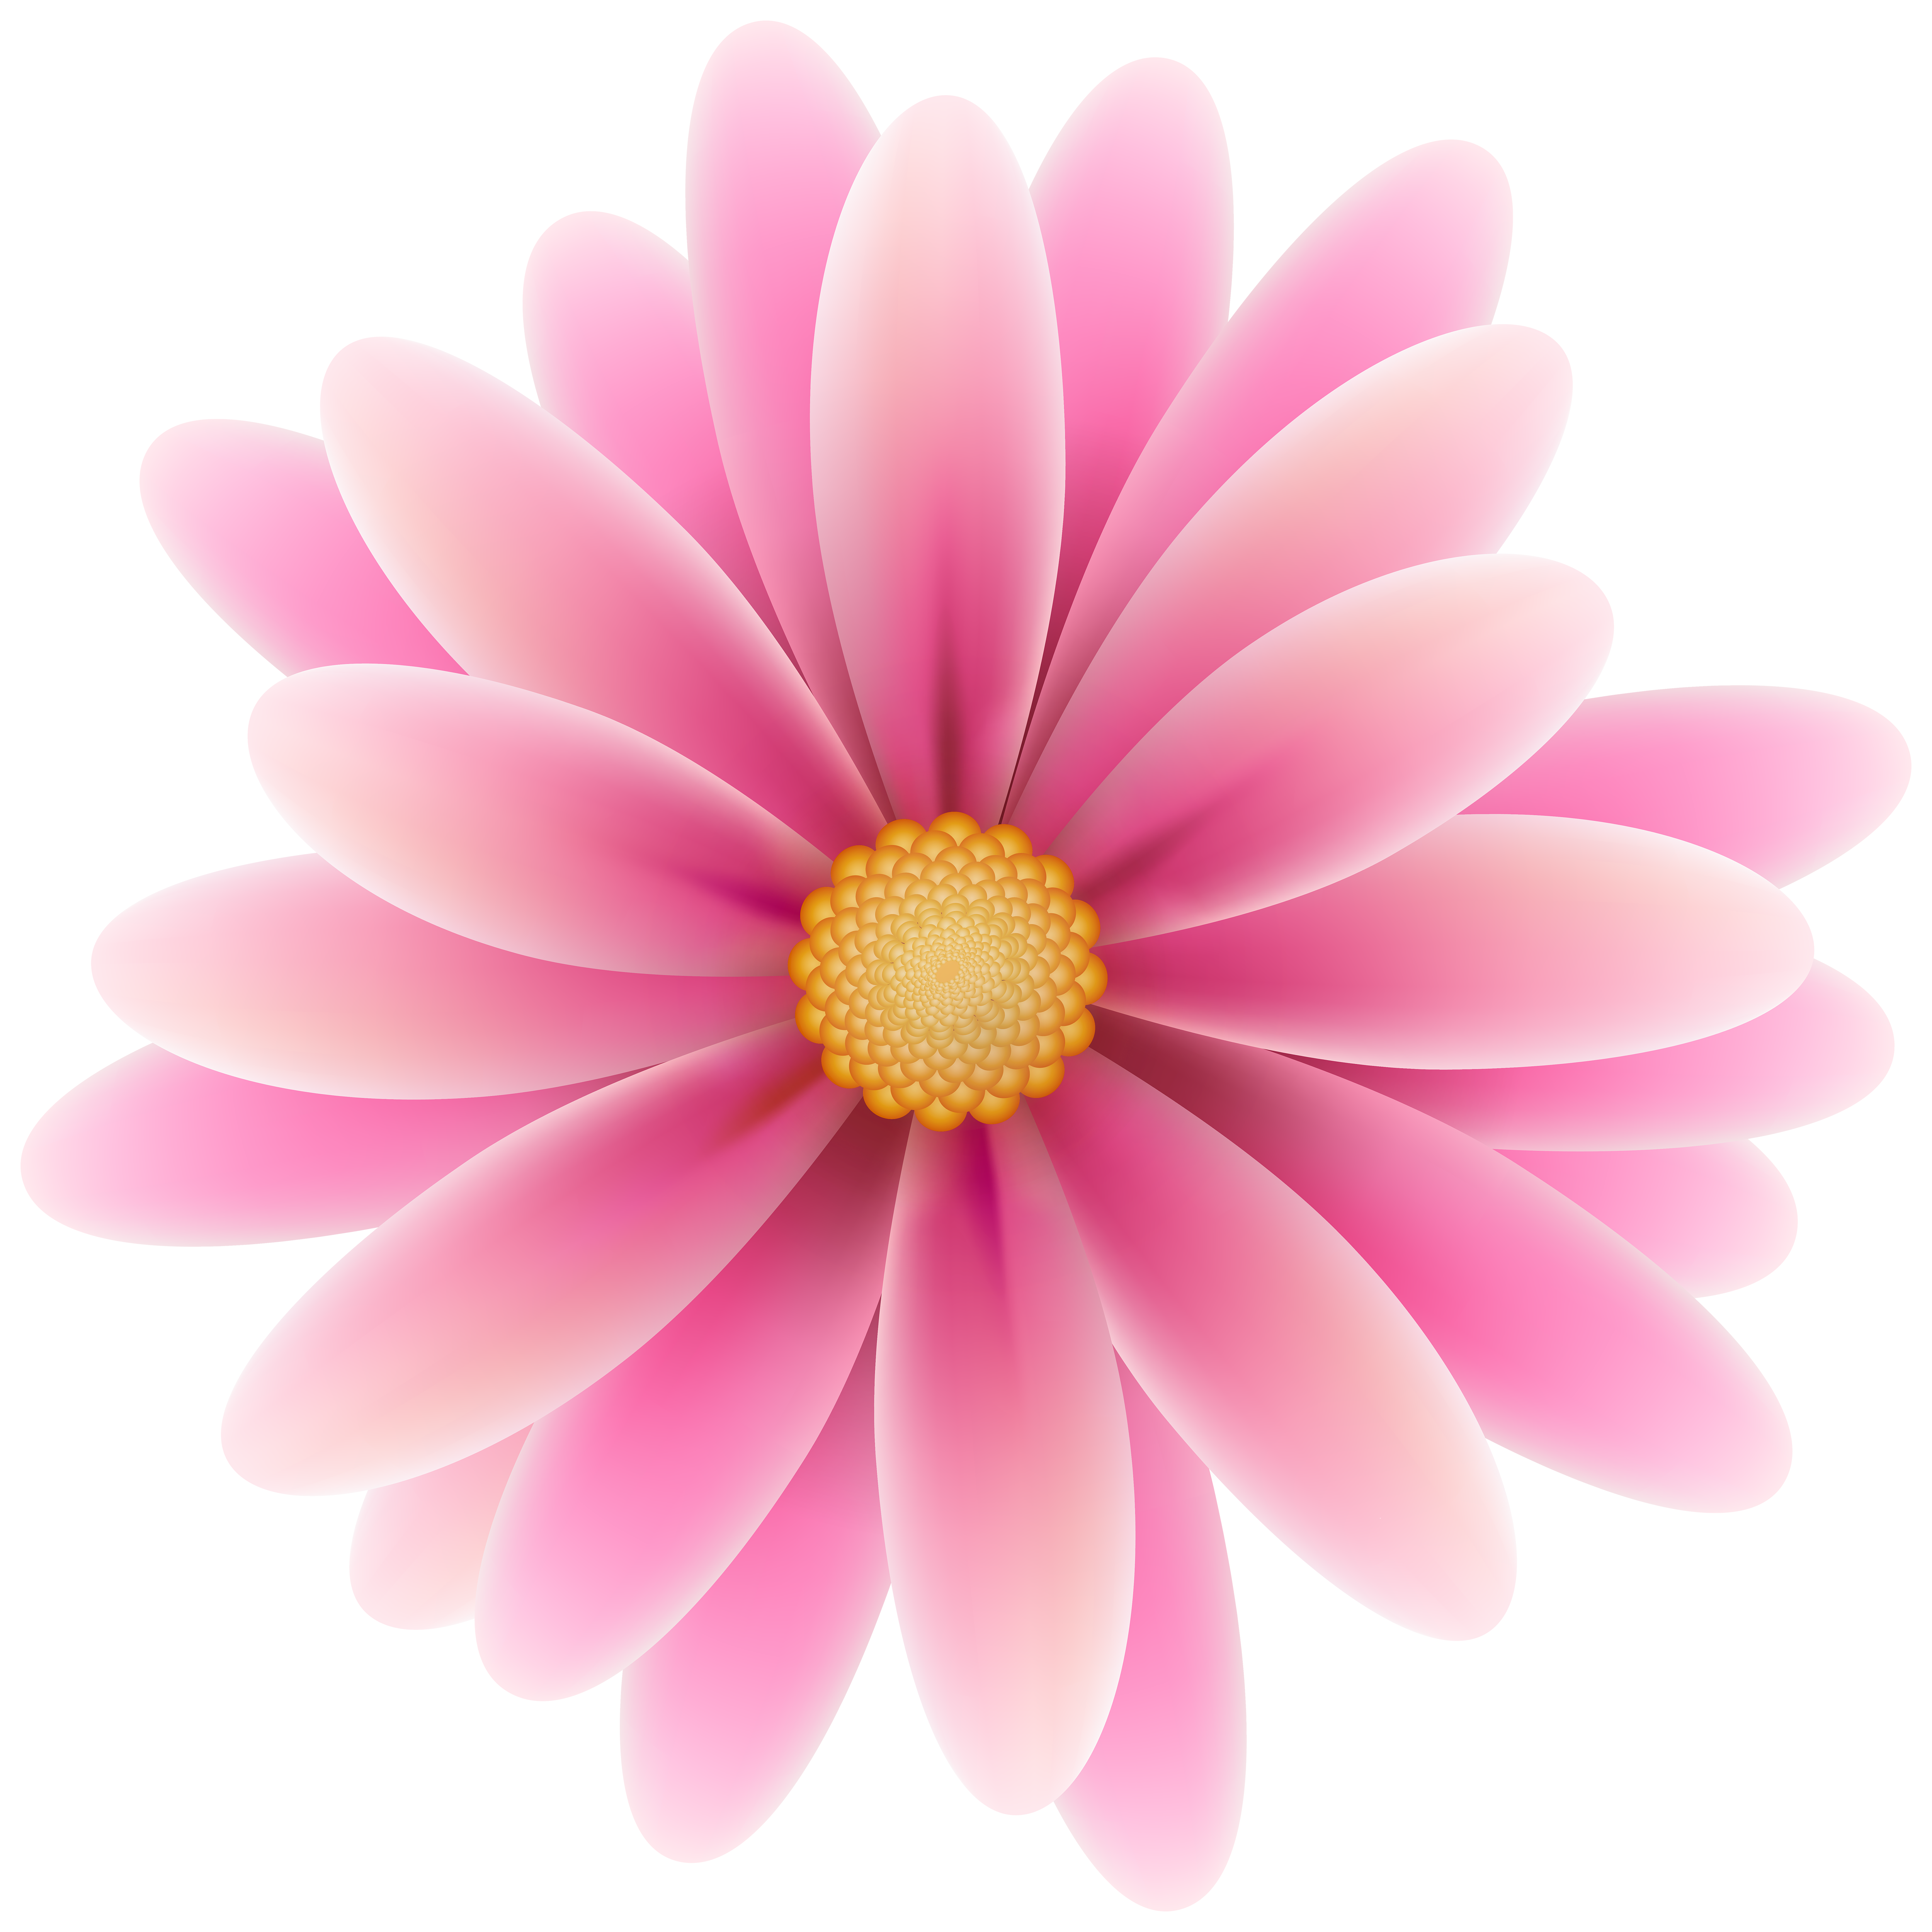 Pink flower clipart png. Clip art image gallery